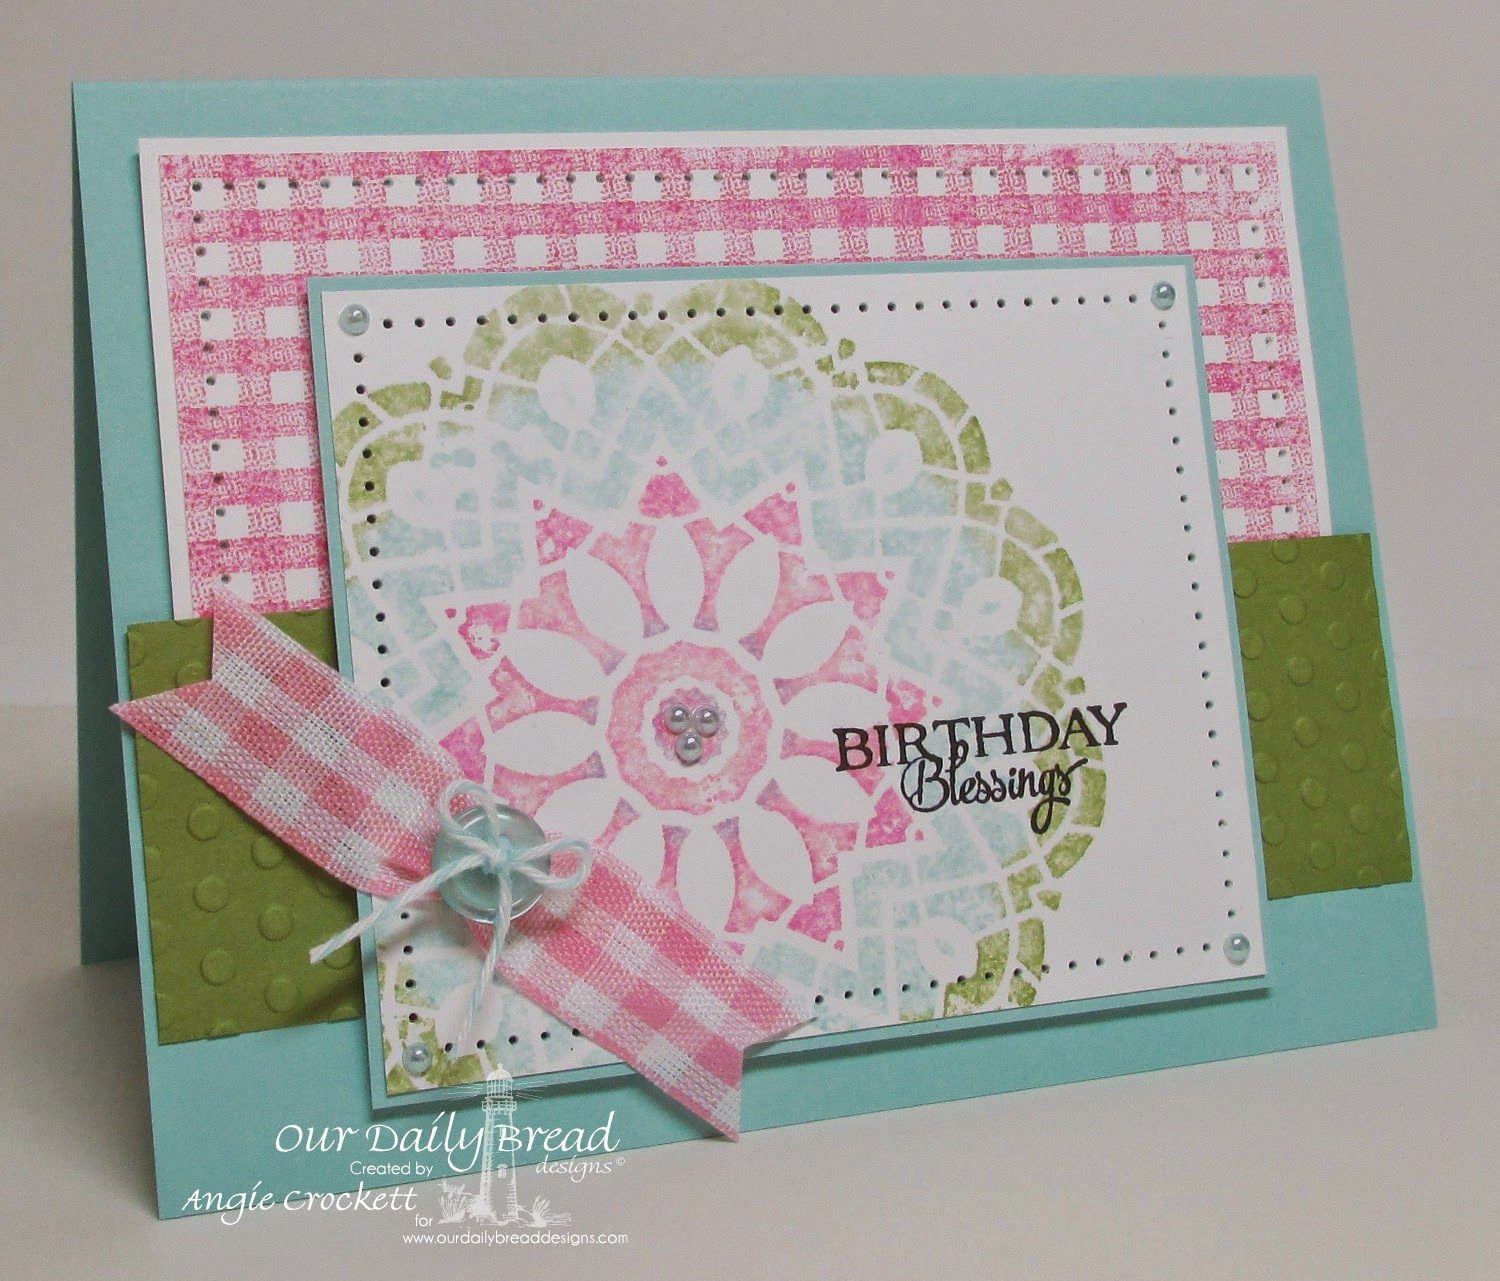 ODBD Birthday Doily, Gingham Background, Card Designer Angie Crockett